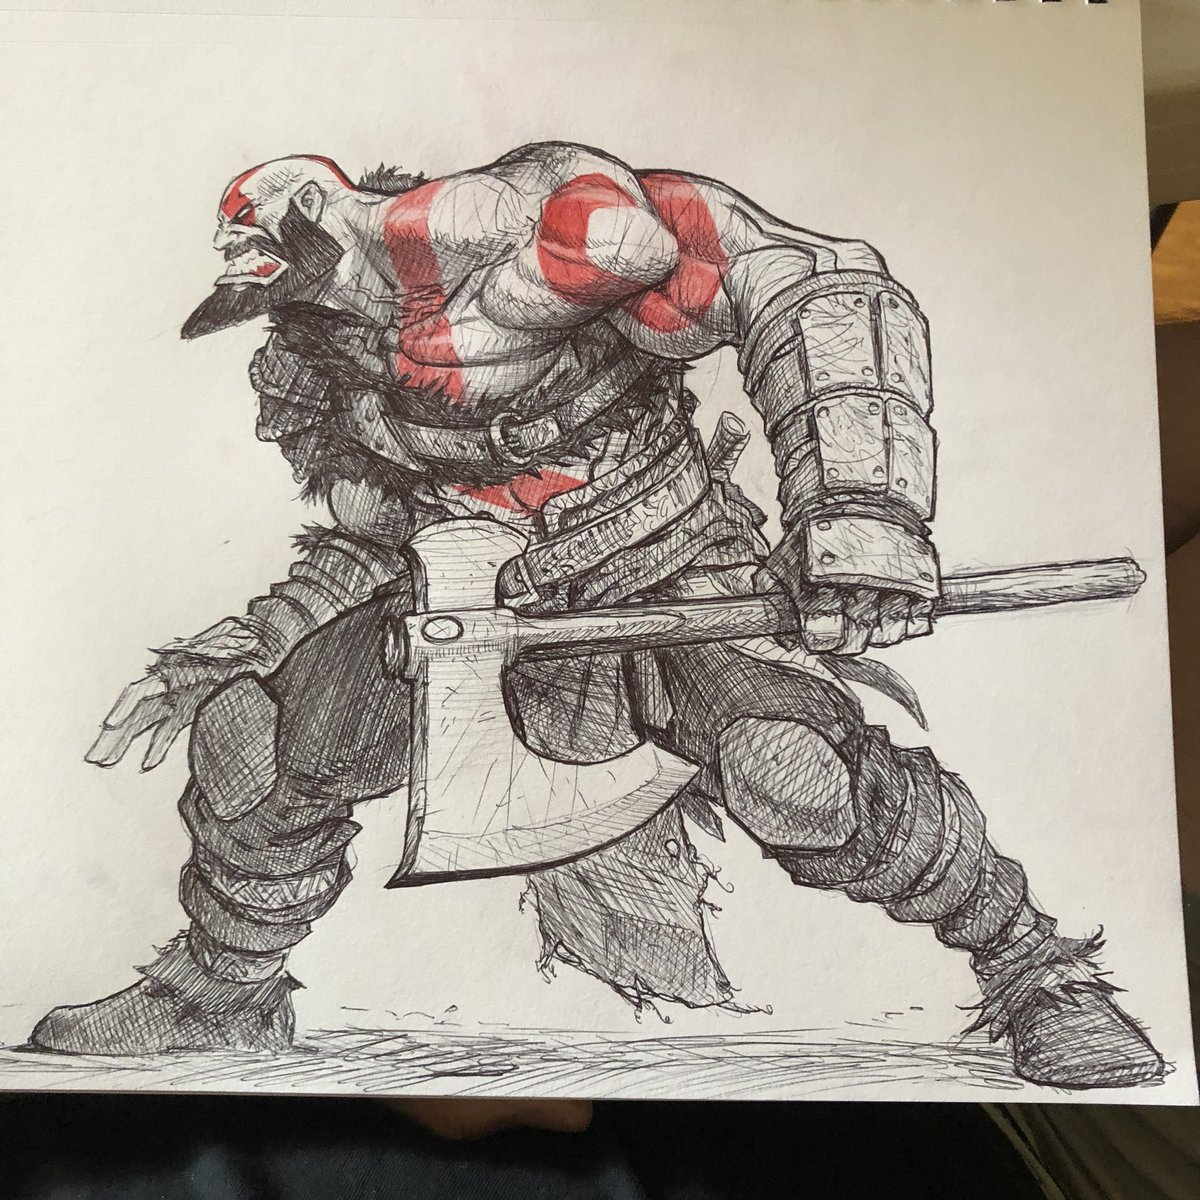 Joverine On Twitter God Of War Is Amazing So Far No Time